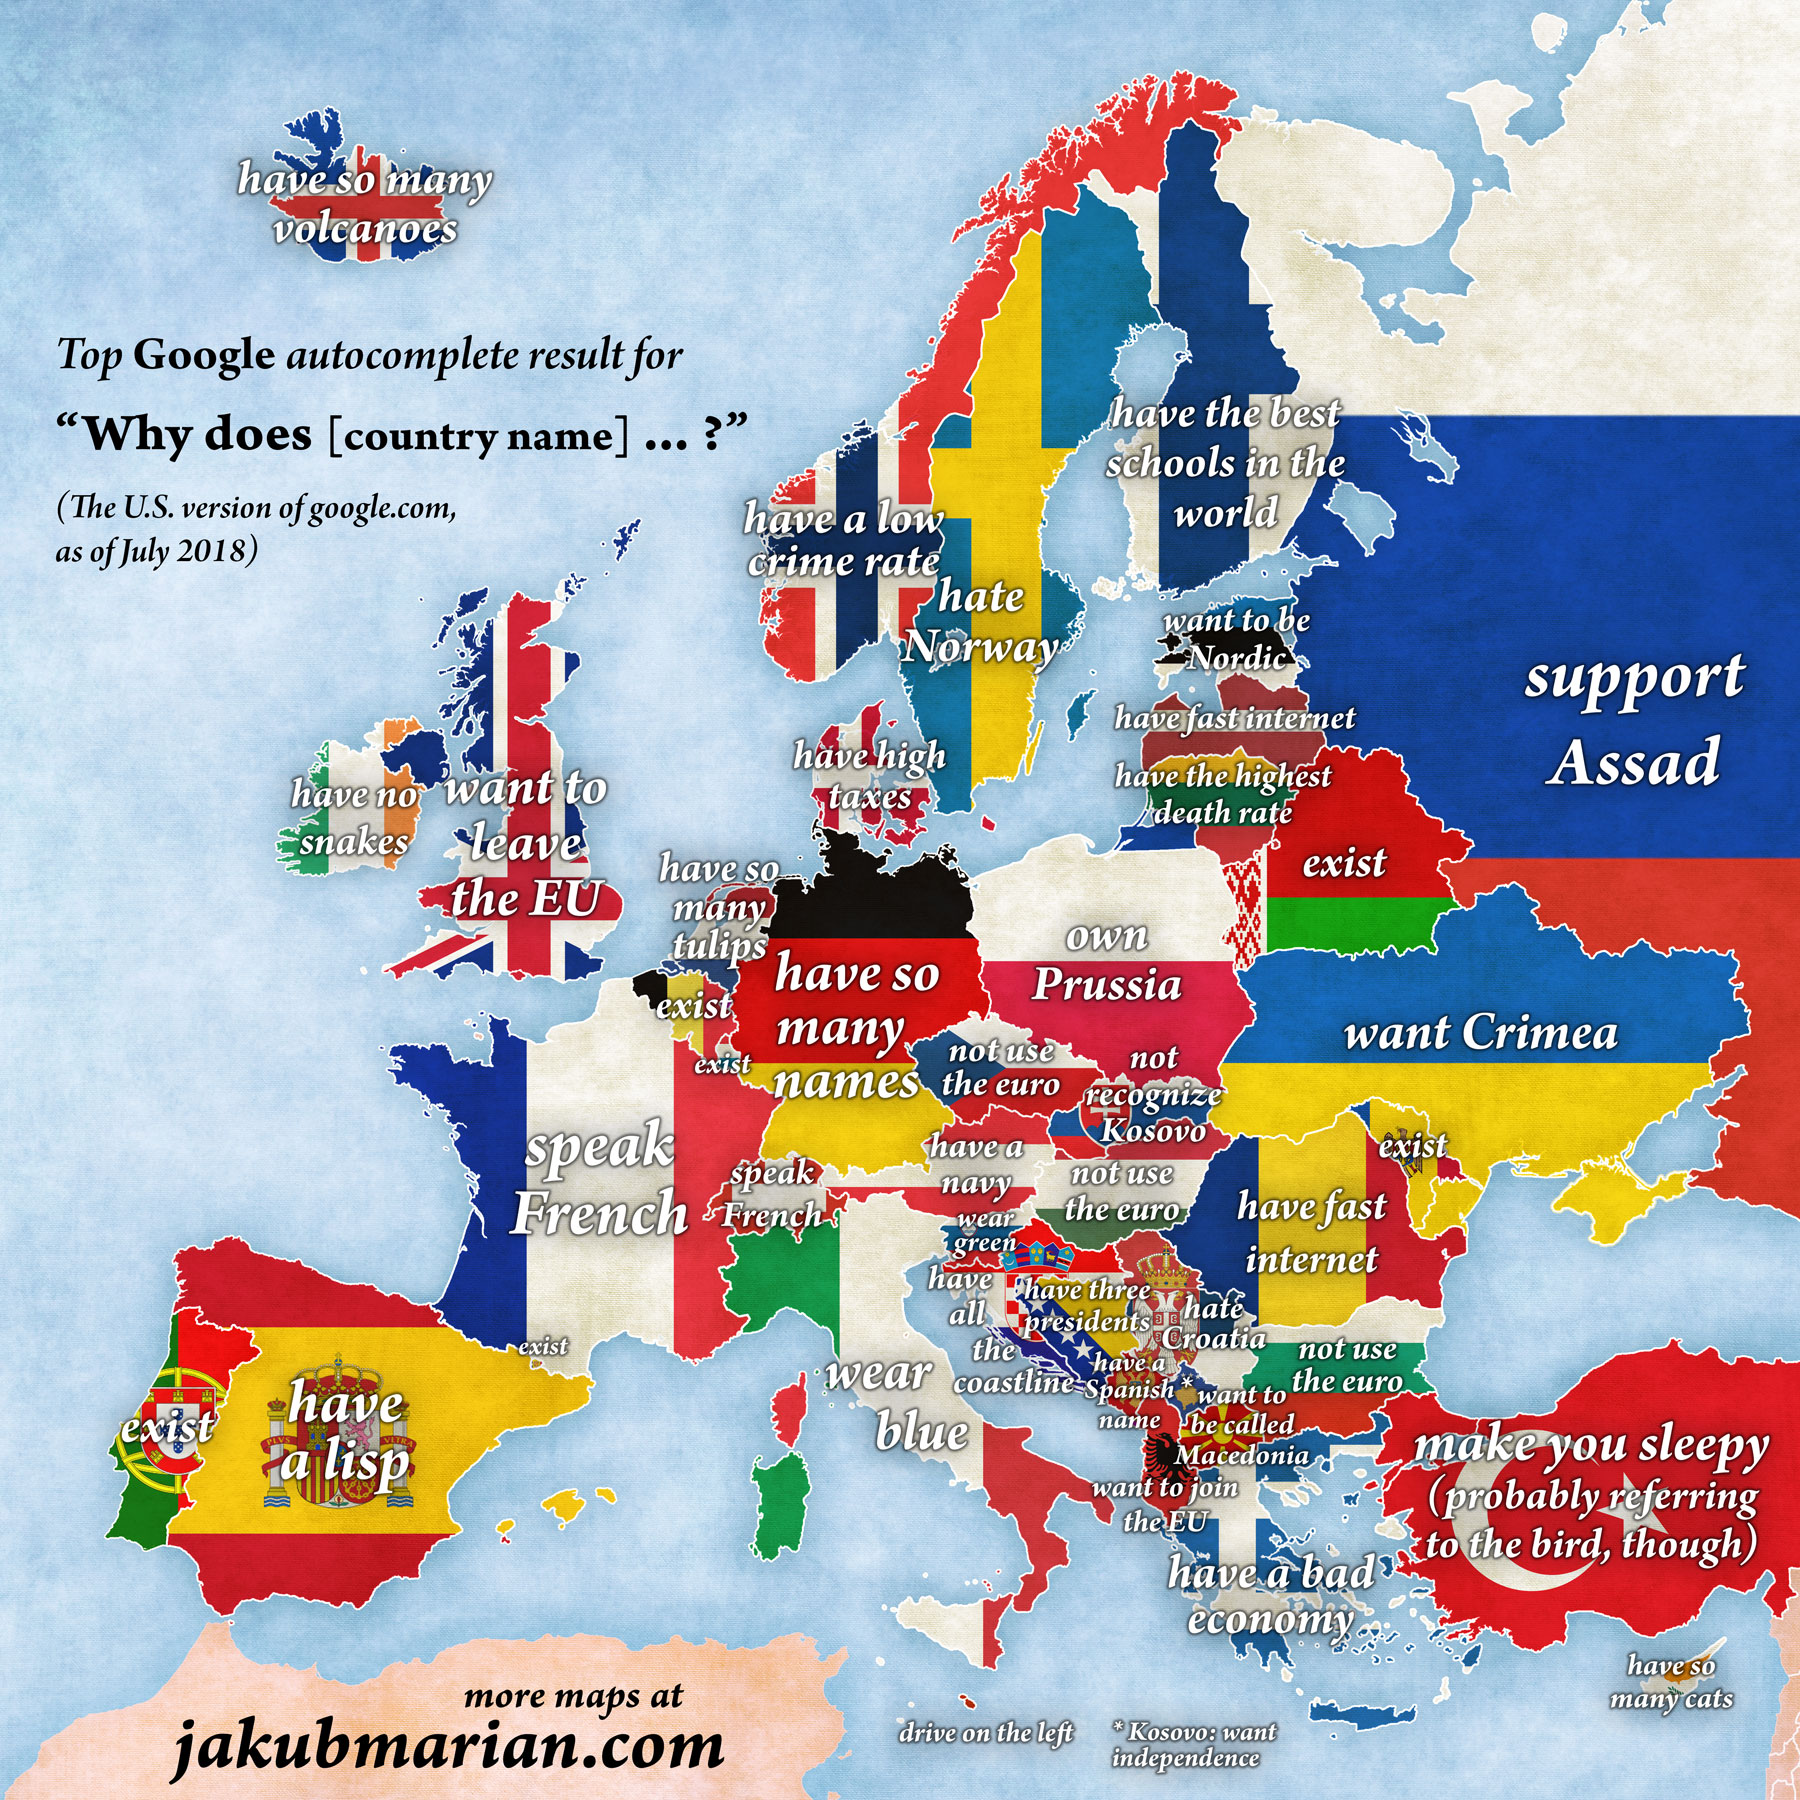 This clever map reveals the questions Americans Google about ... on pyrenees mountains map, rotterdam map, japanese yen, french franc, new zealand dollar, greek drachma, seventeen provinces map, egyptian pound, world map, europe map, turkish lira, norwegian krone, euro sign, germany map, chinese yuan, singapore dollar, argentina map, europ map, portugal map, global currency map, mexican peso, italy map, swiss franc, instructional map, montenegro map, brazilian real, spain map, france map, european map, eurozone map, indian rupee, danish krone, swedish krona, russian ruble, danube river map, japan map, italian lira, norway rivers map,